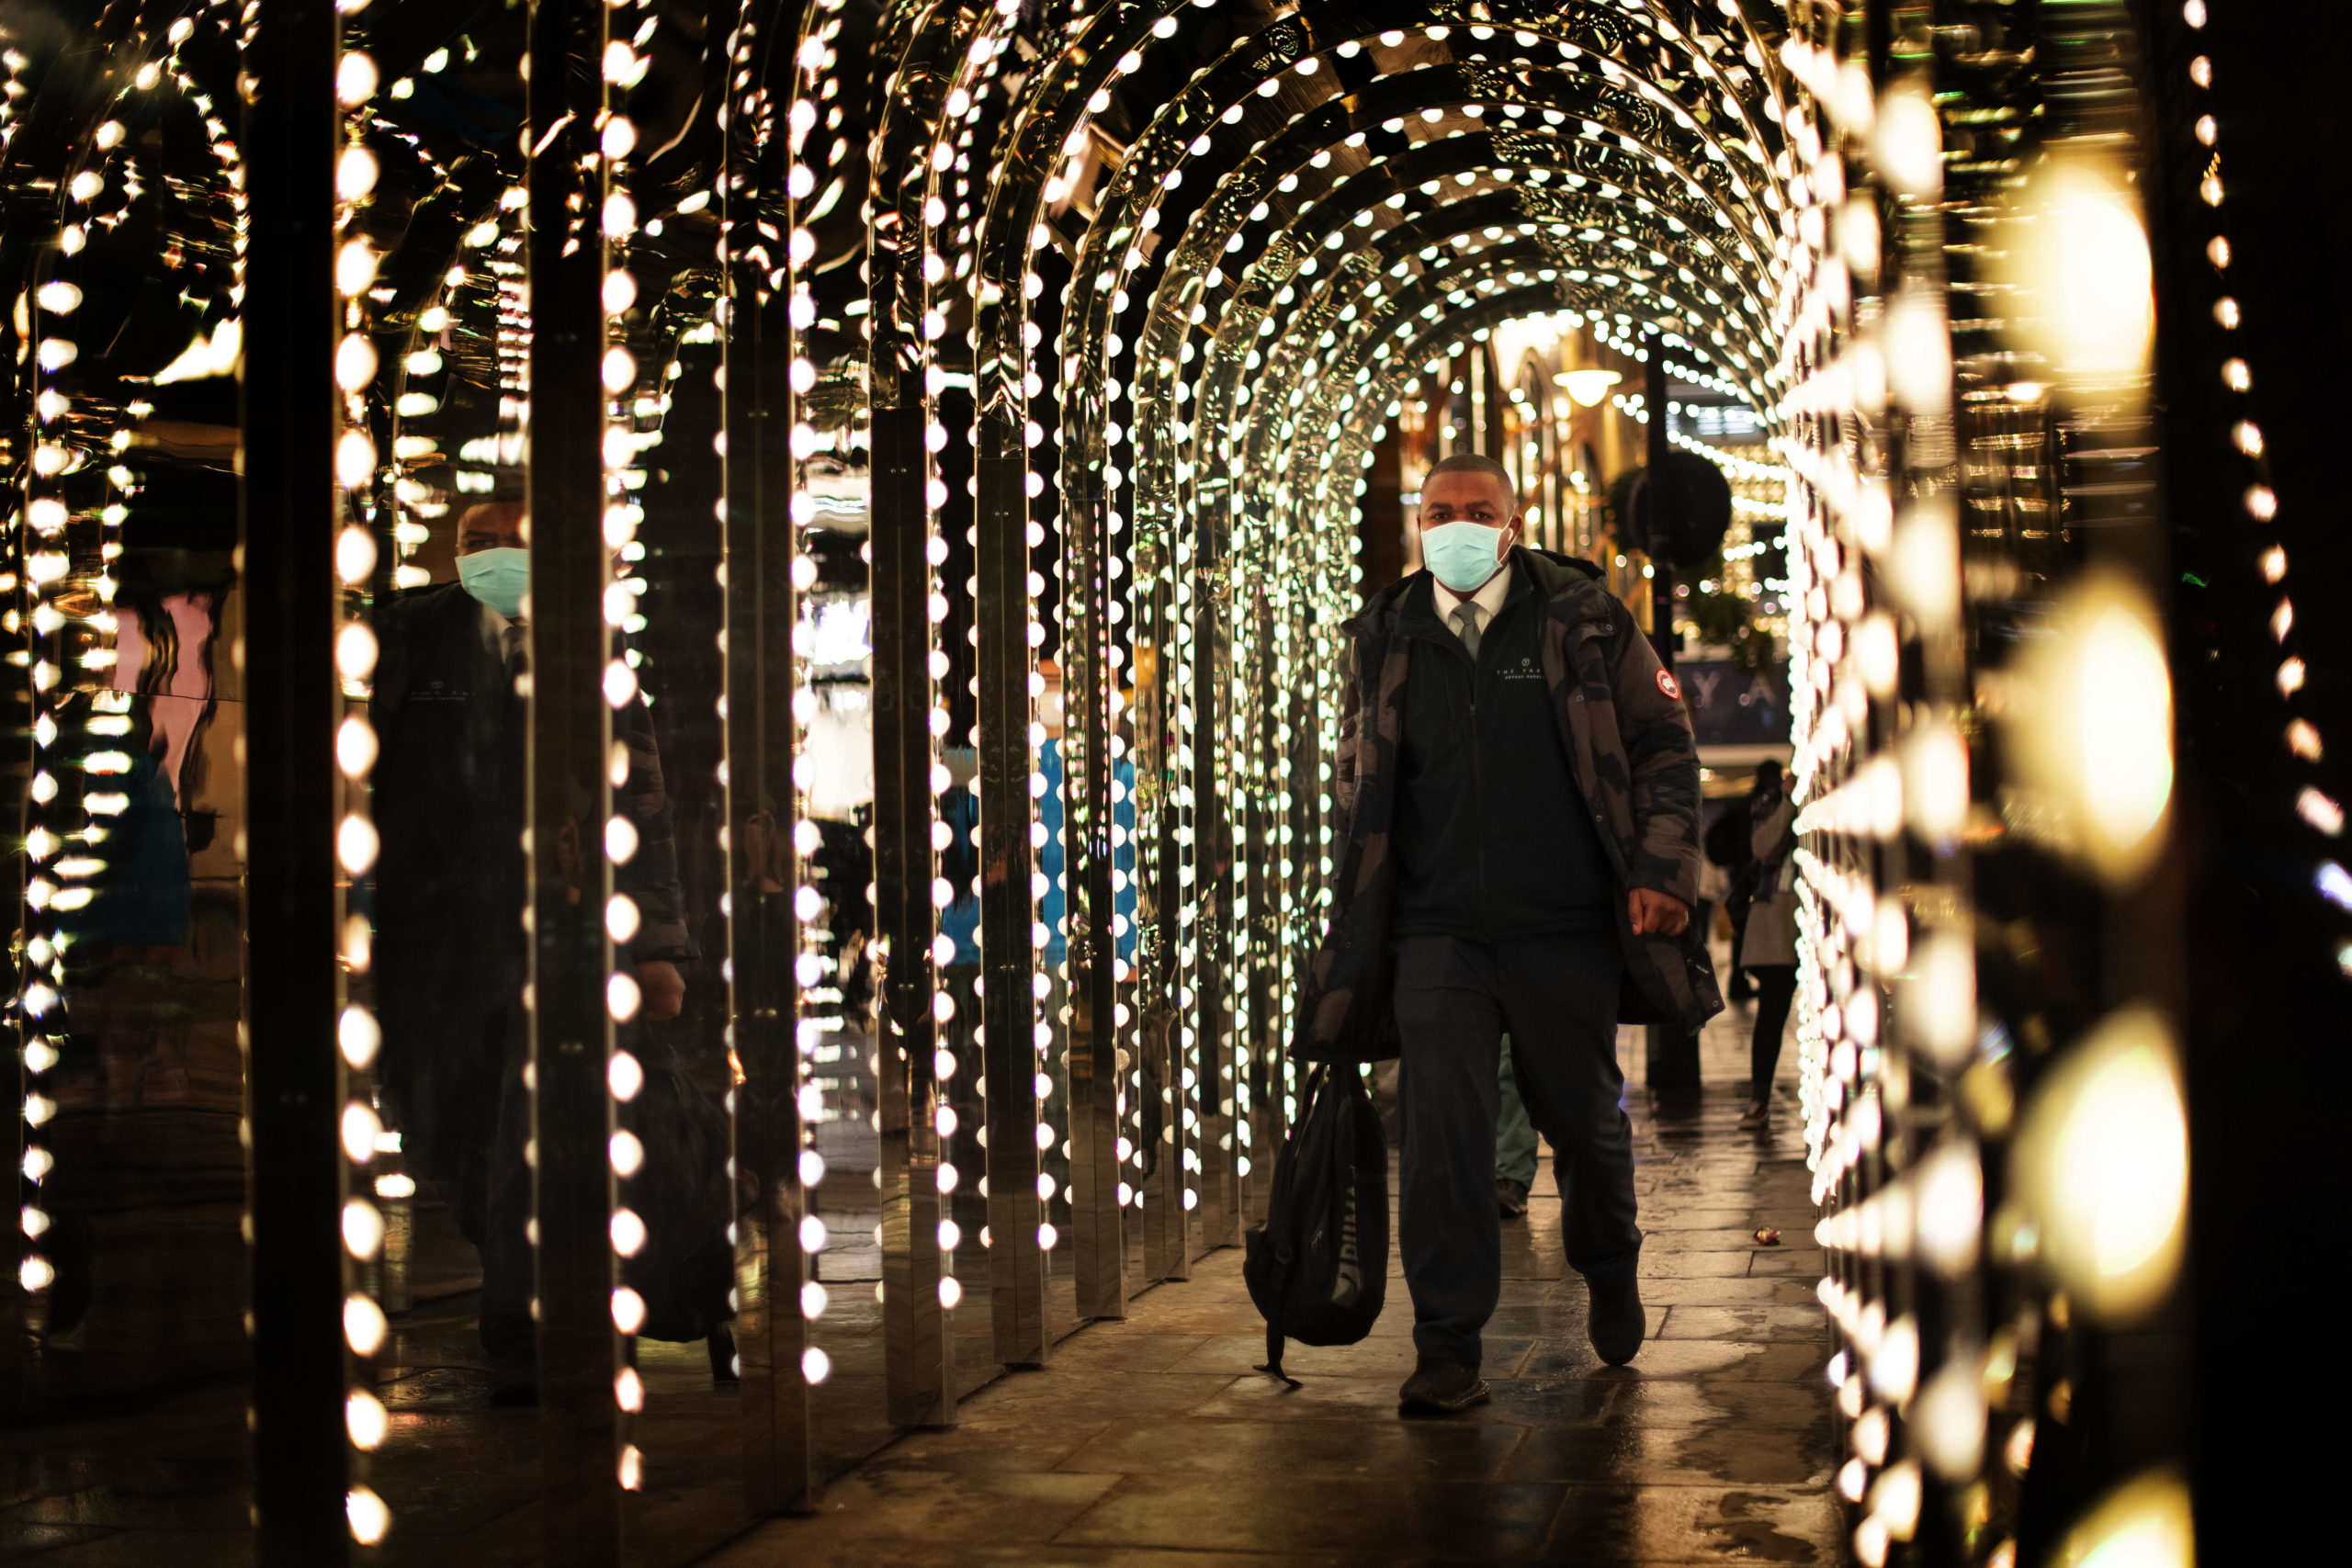 A man walks through an illuminated walkway in Covent Garden, London, which has moved into the highest tier of coronavirus restrictions as a result of soaring case rates.